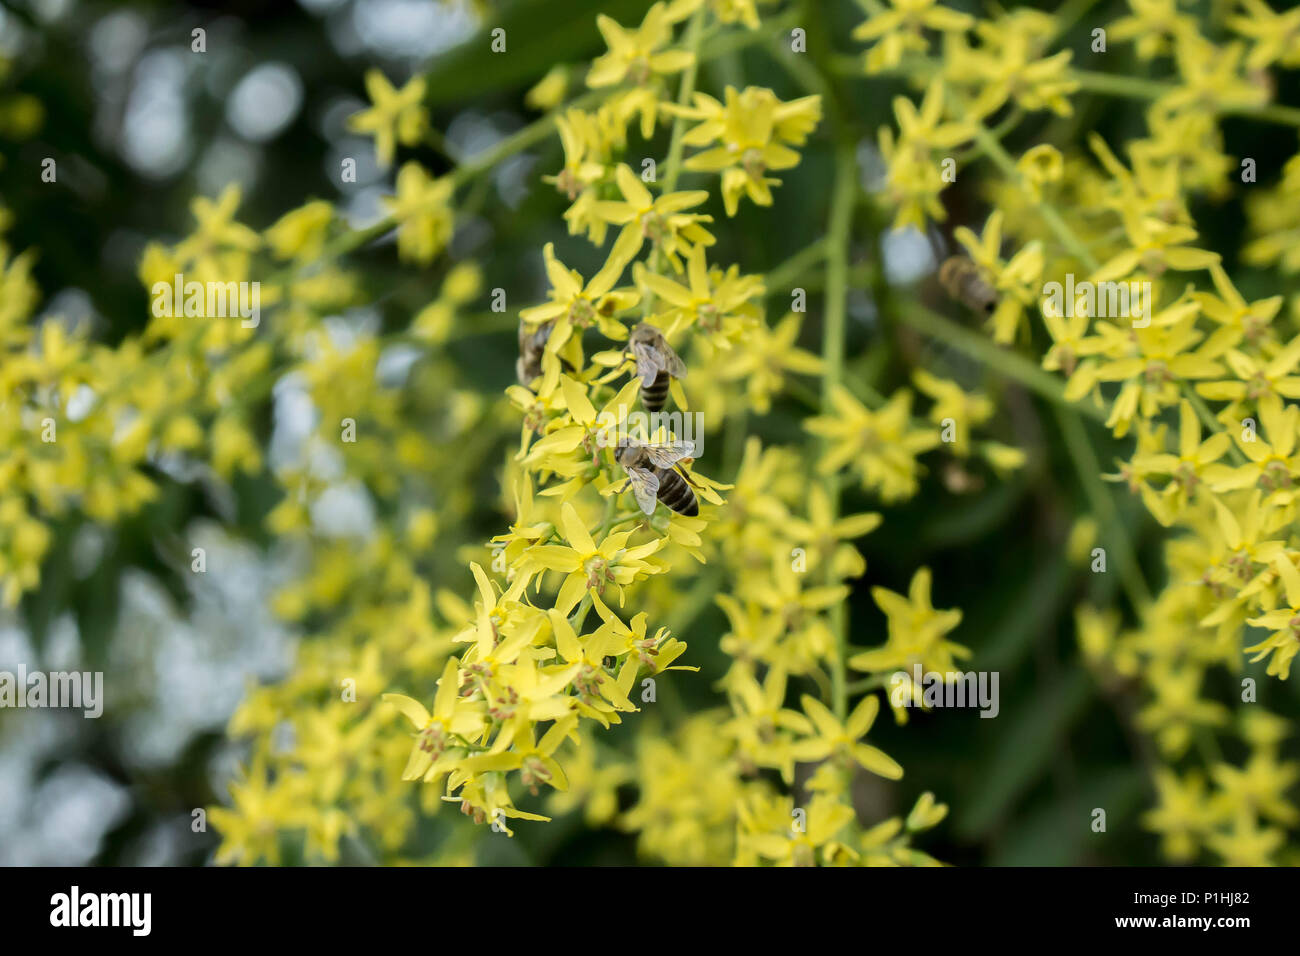 Yellow flower of Koelreuteria paniculata with bees polinating - Stock Image